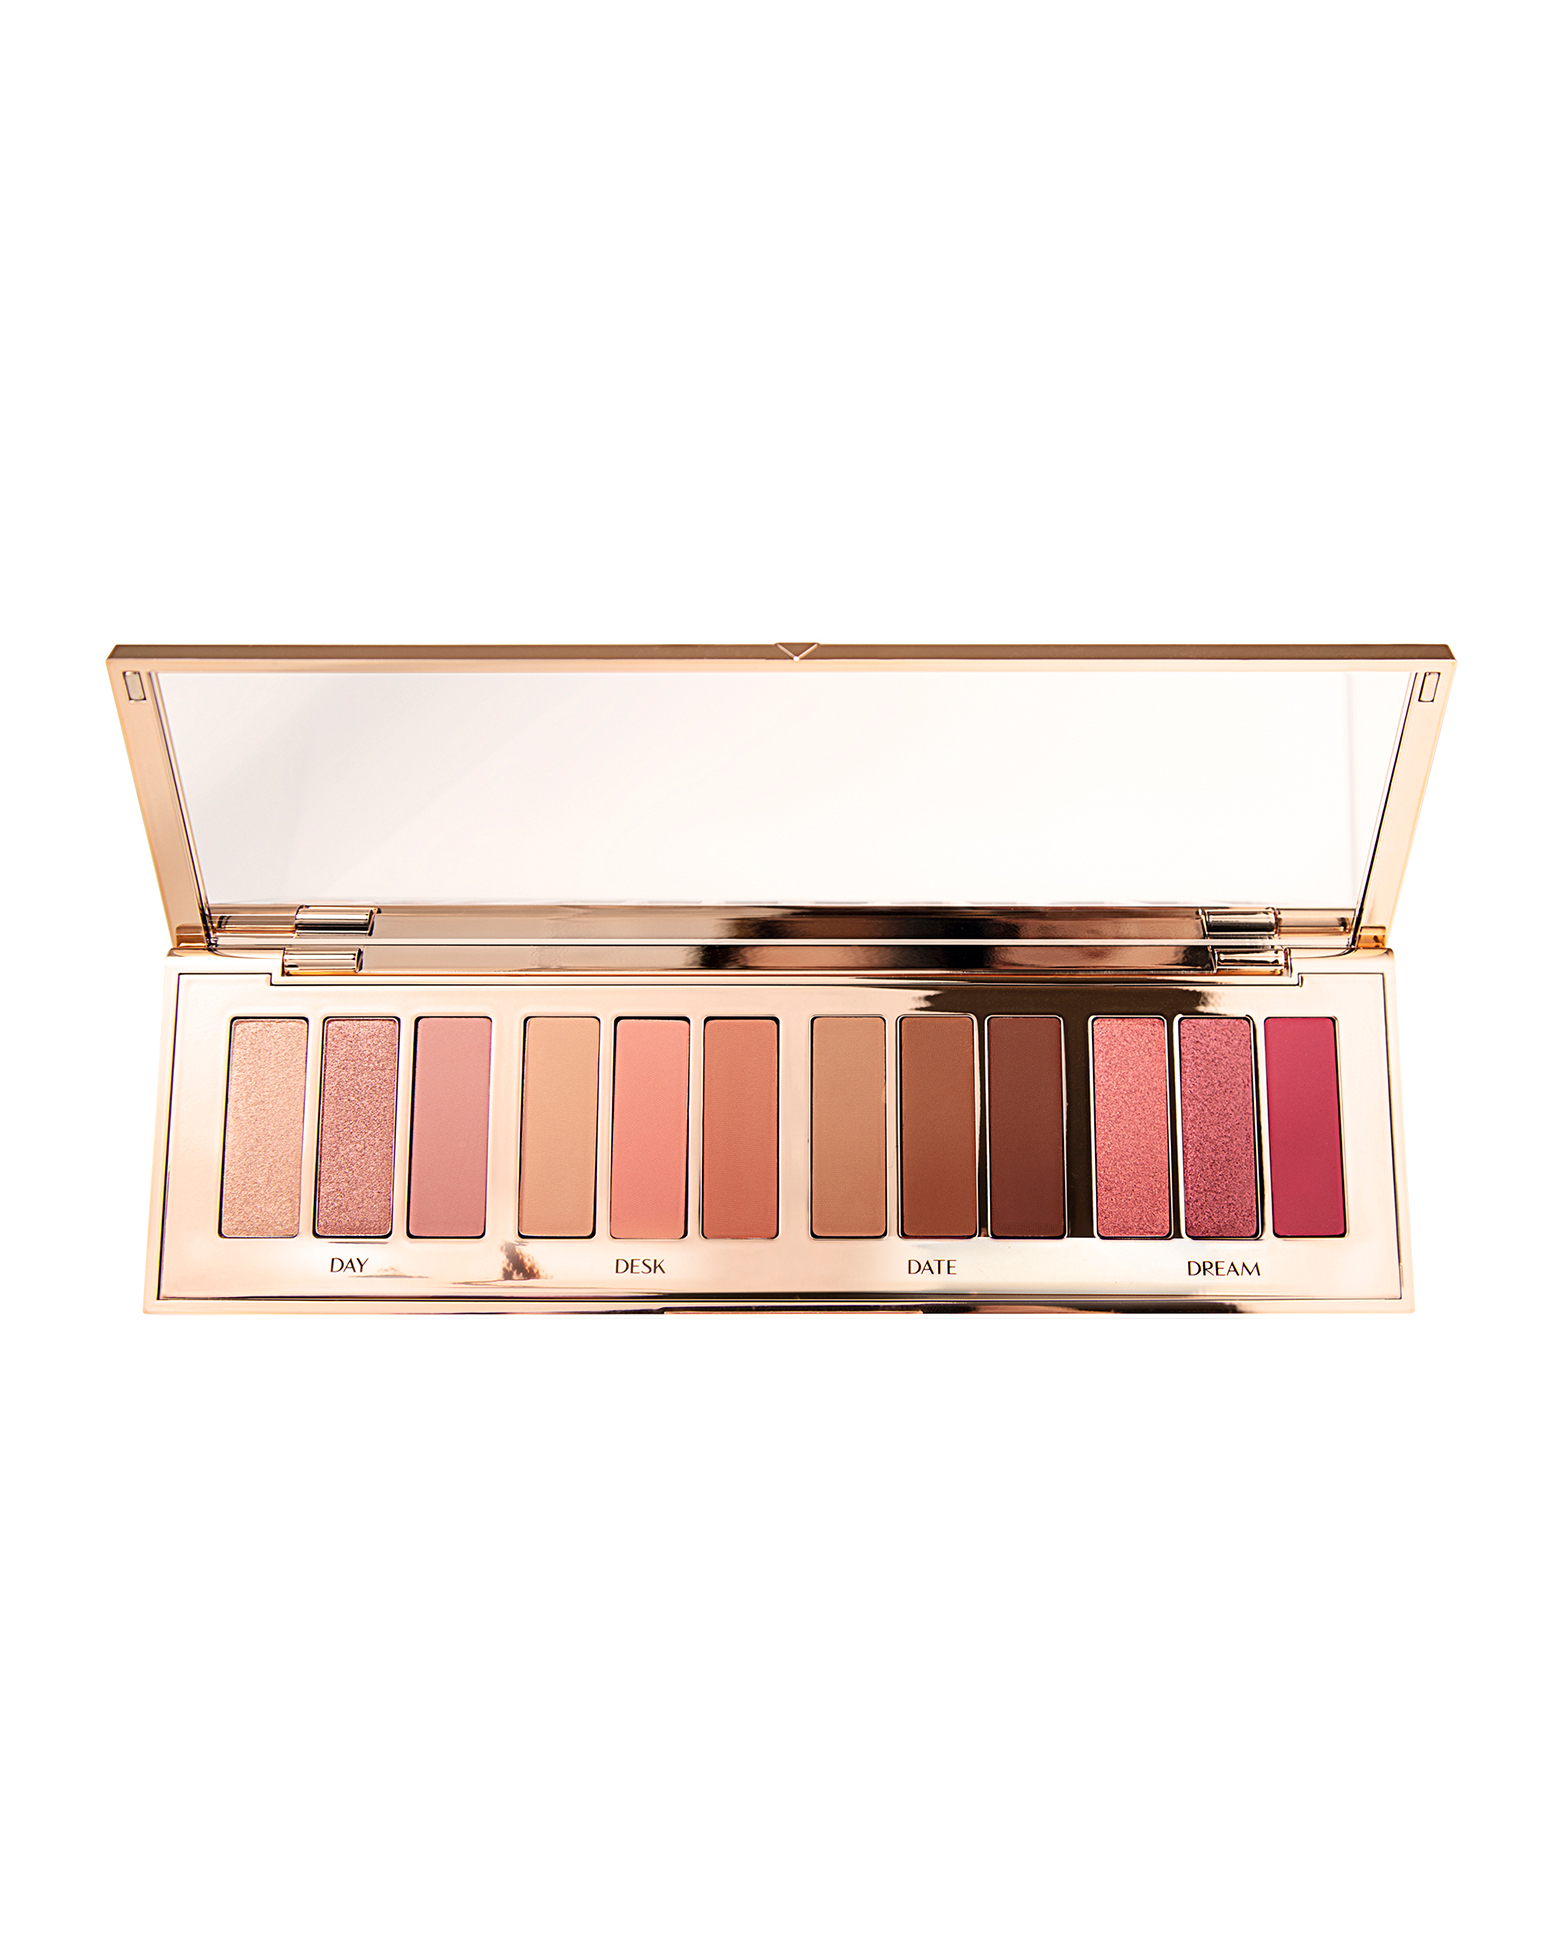 Charlotte Tilbury | Instant Eye Palette - Pillowtalk | Cult Beauty